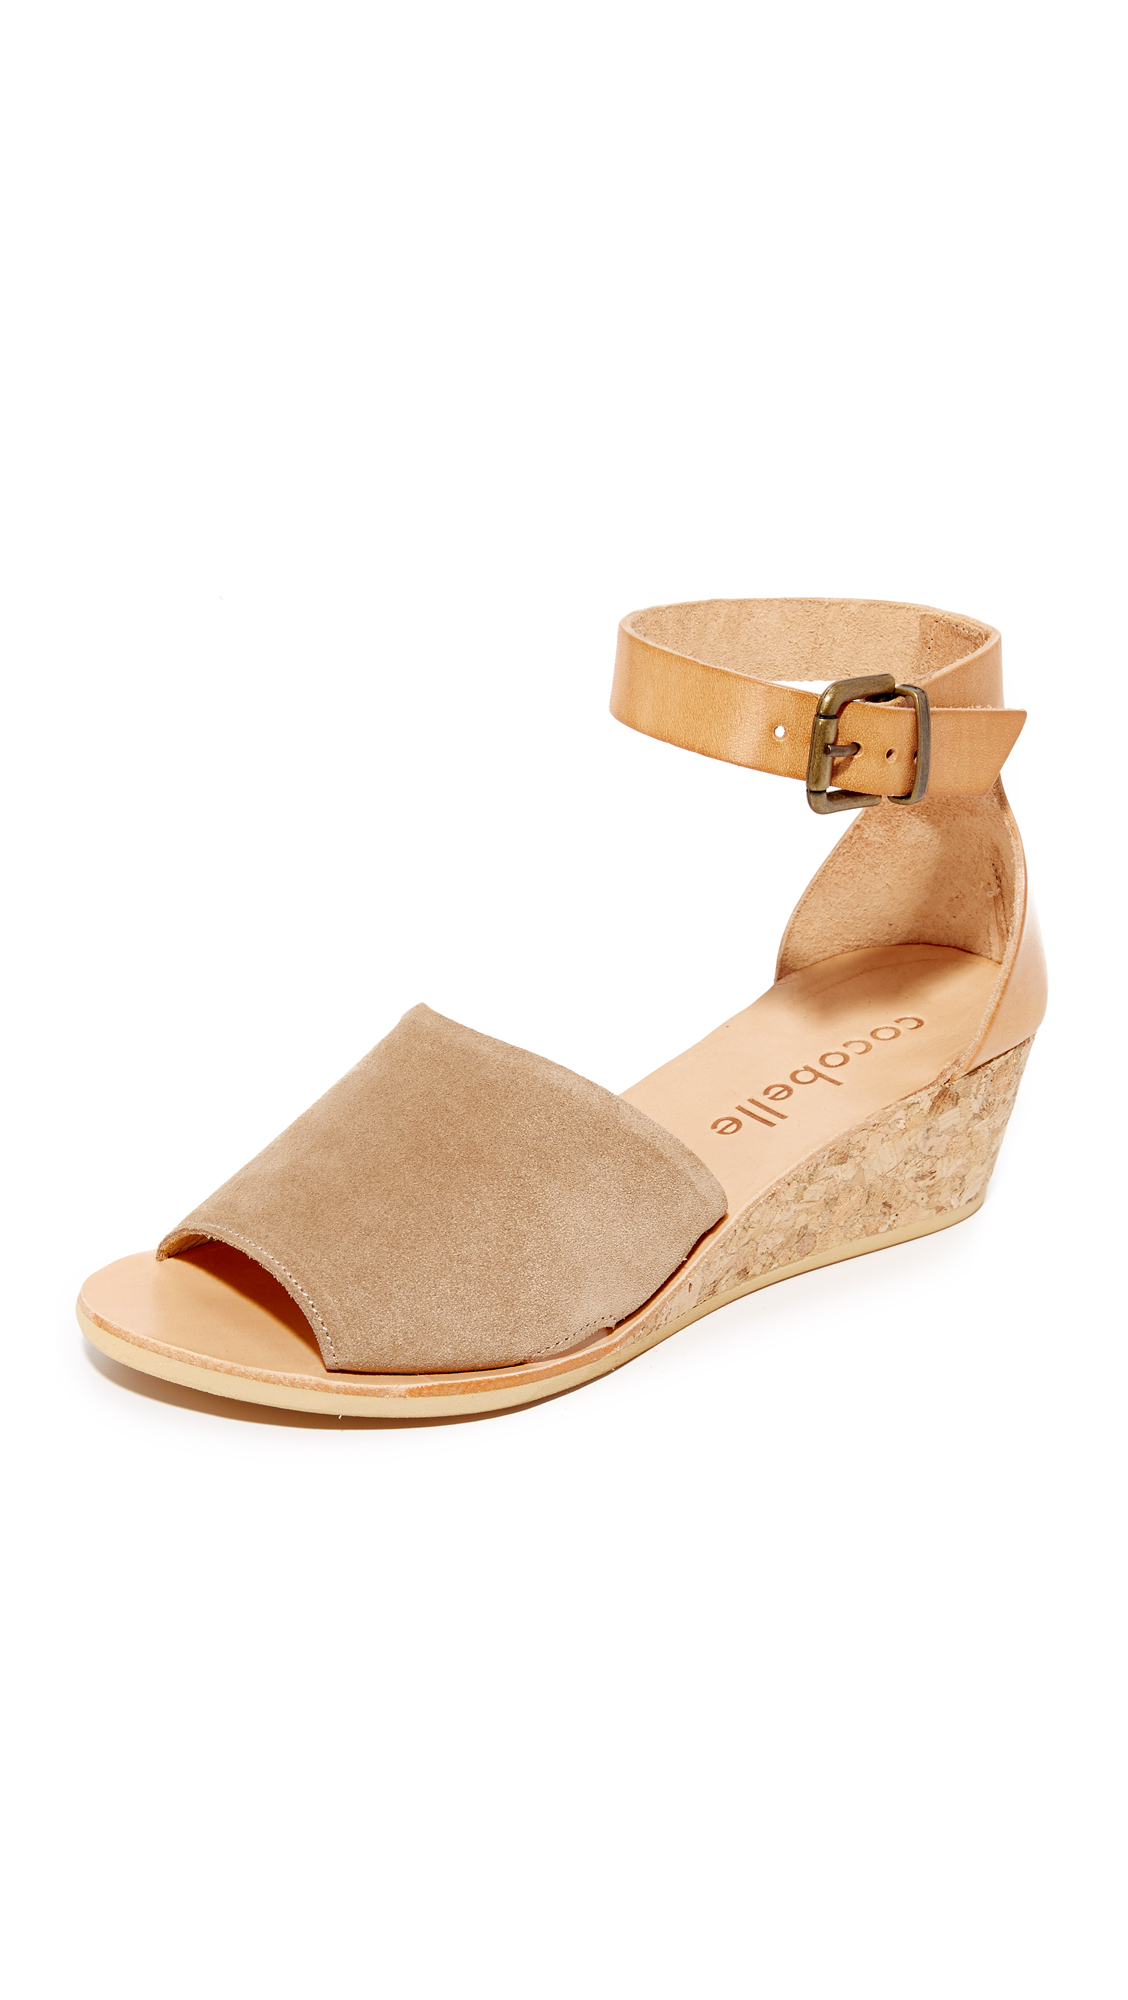 Cocobelle Sedona Wedge Sandals - Brown at Shopbop